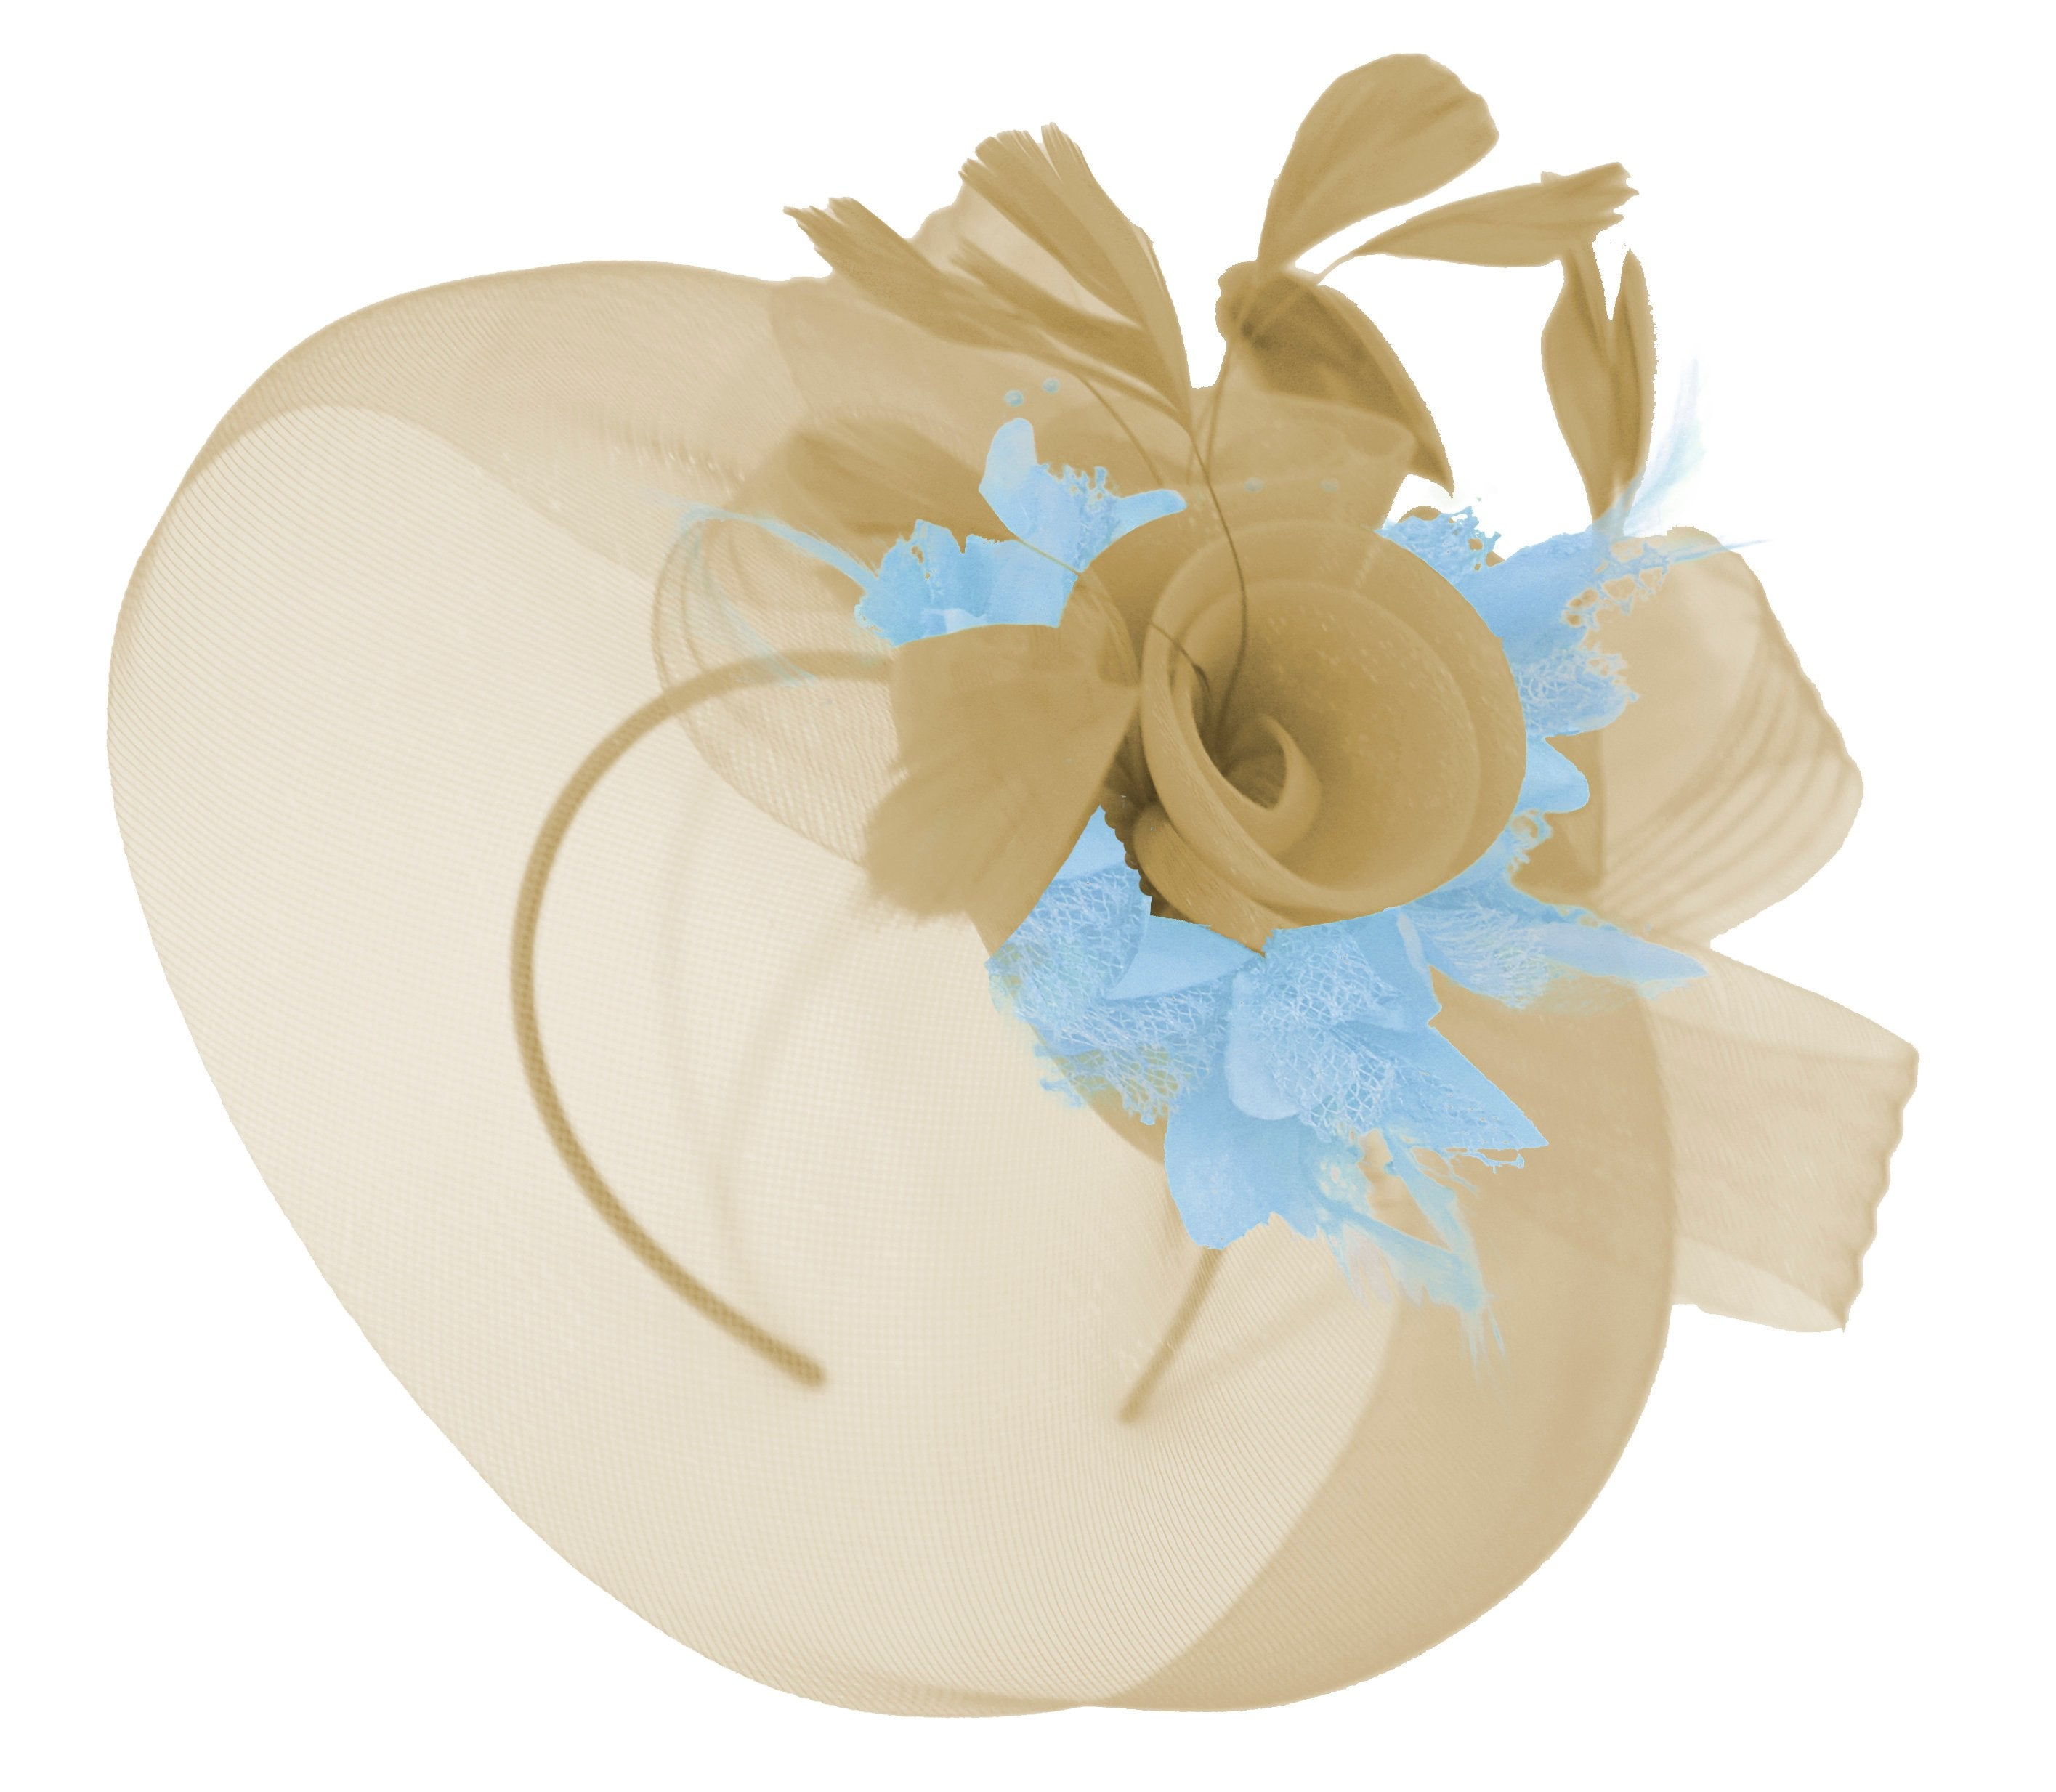 Caprilite Beige Camel and Baby Blue Fascinator Hat Veil Net Hair Clip Ascot Derby Races Wedding Headband Feather Flower